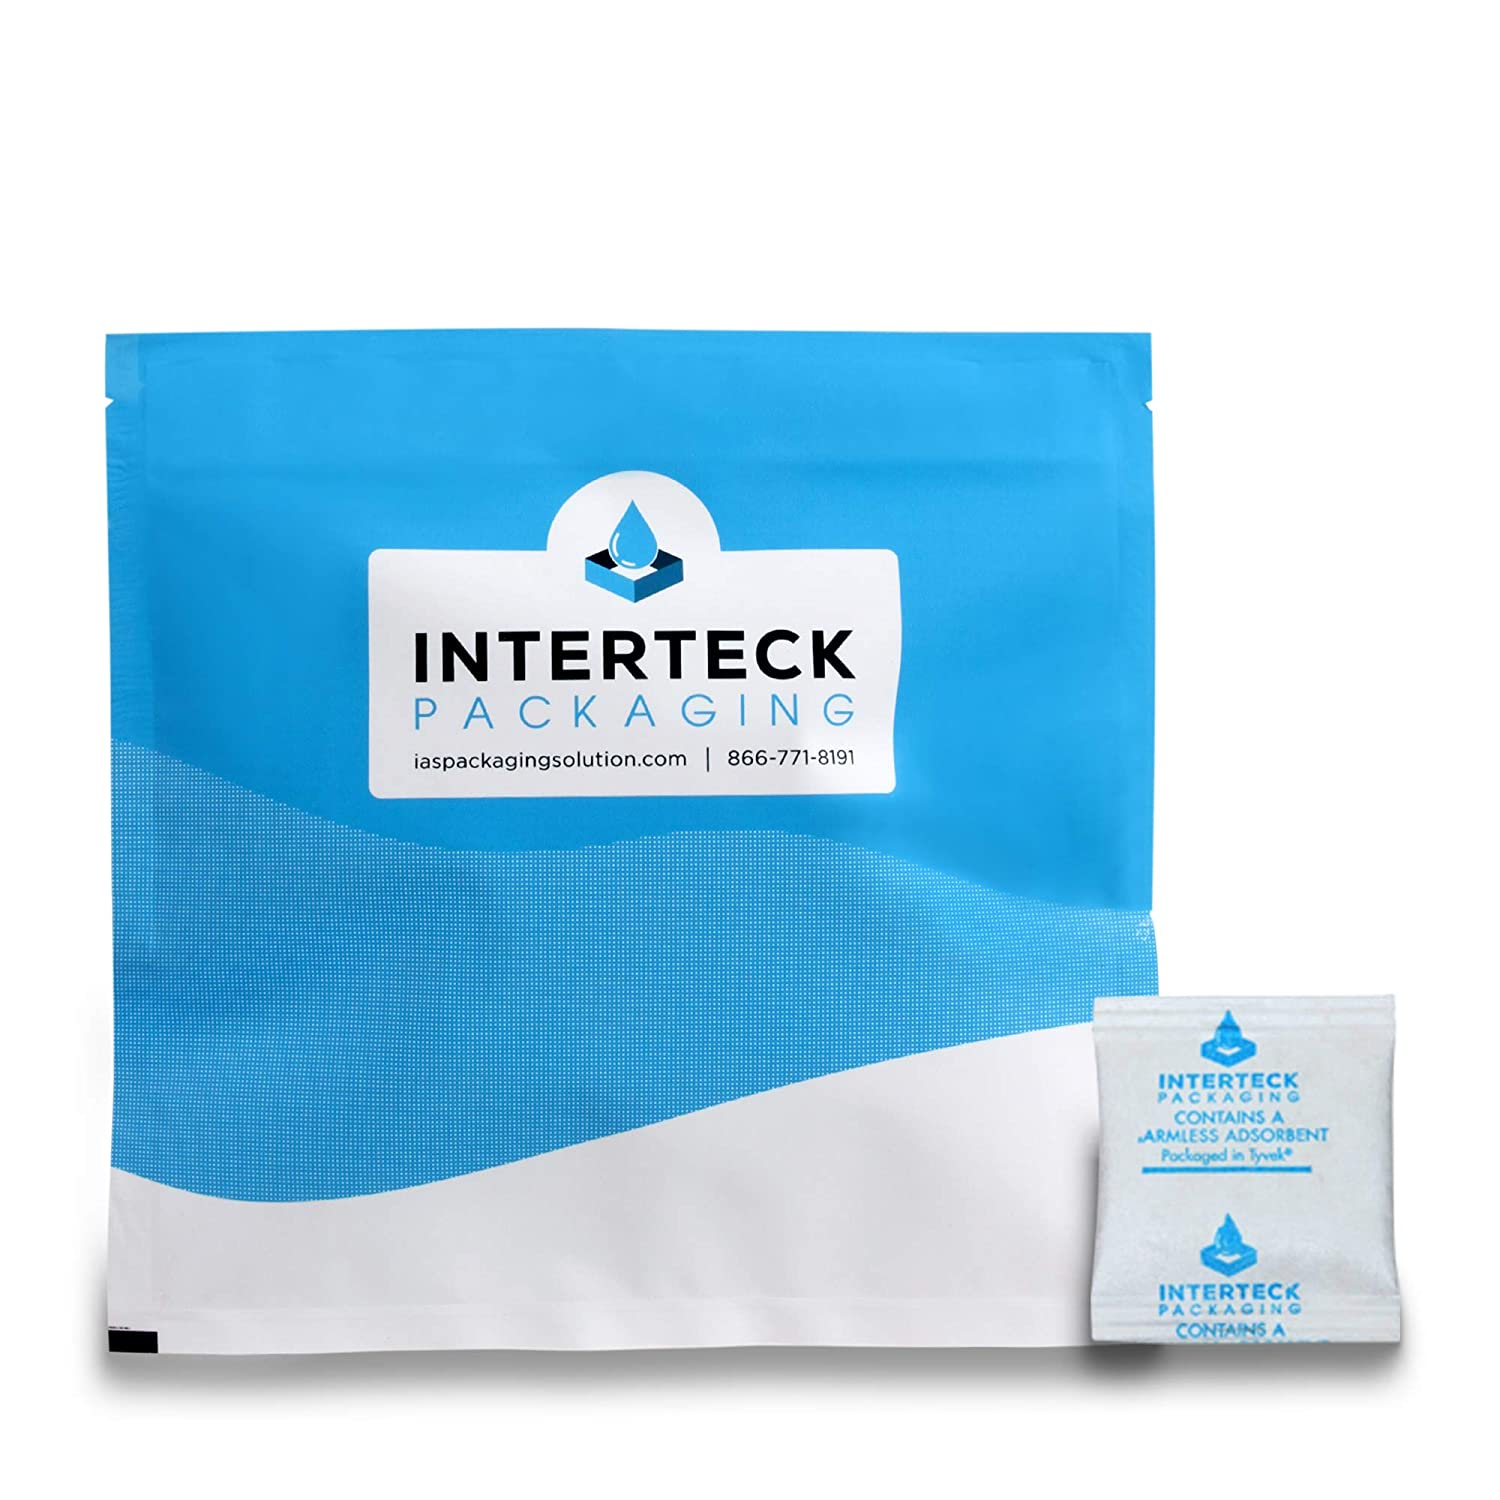 Interteck Packaging 0.5 Gram Silica Gel Packets - Rechargeable Desiccant Packets and Dehumidifiers (Non-Indicating, Tyvek 500 Pack)